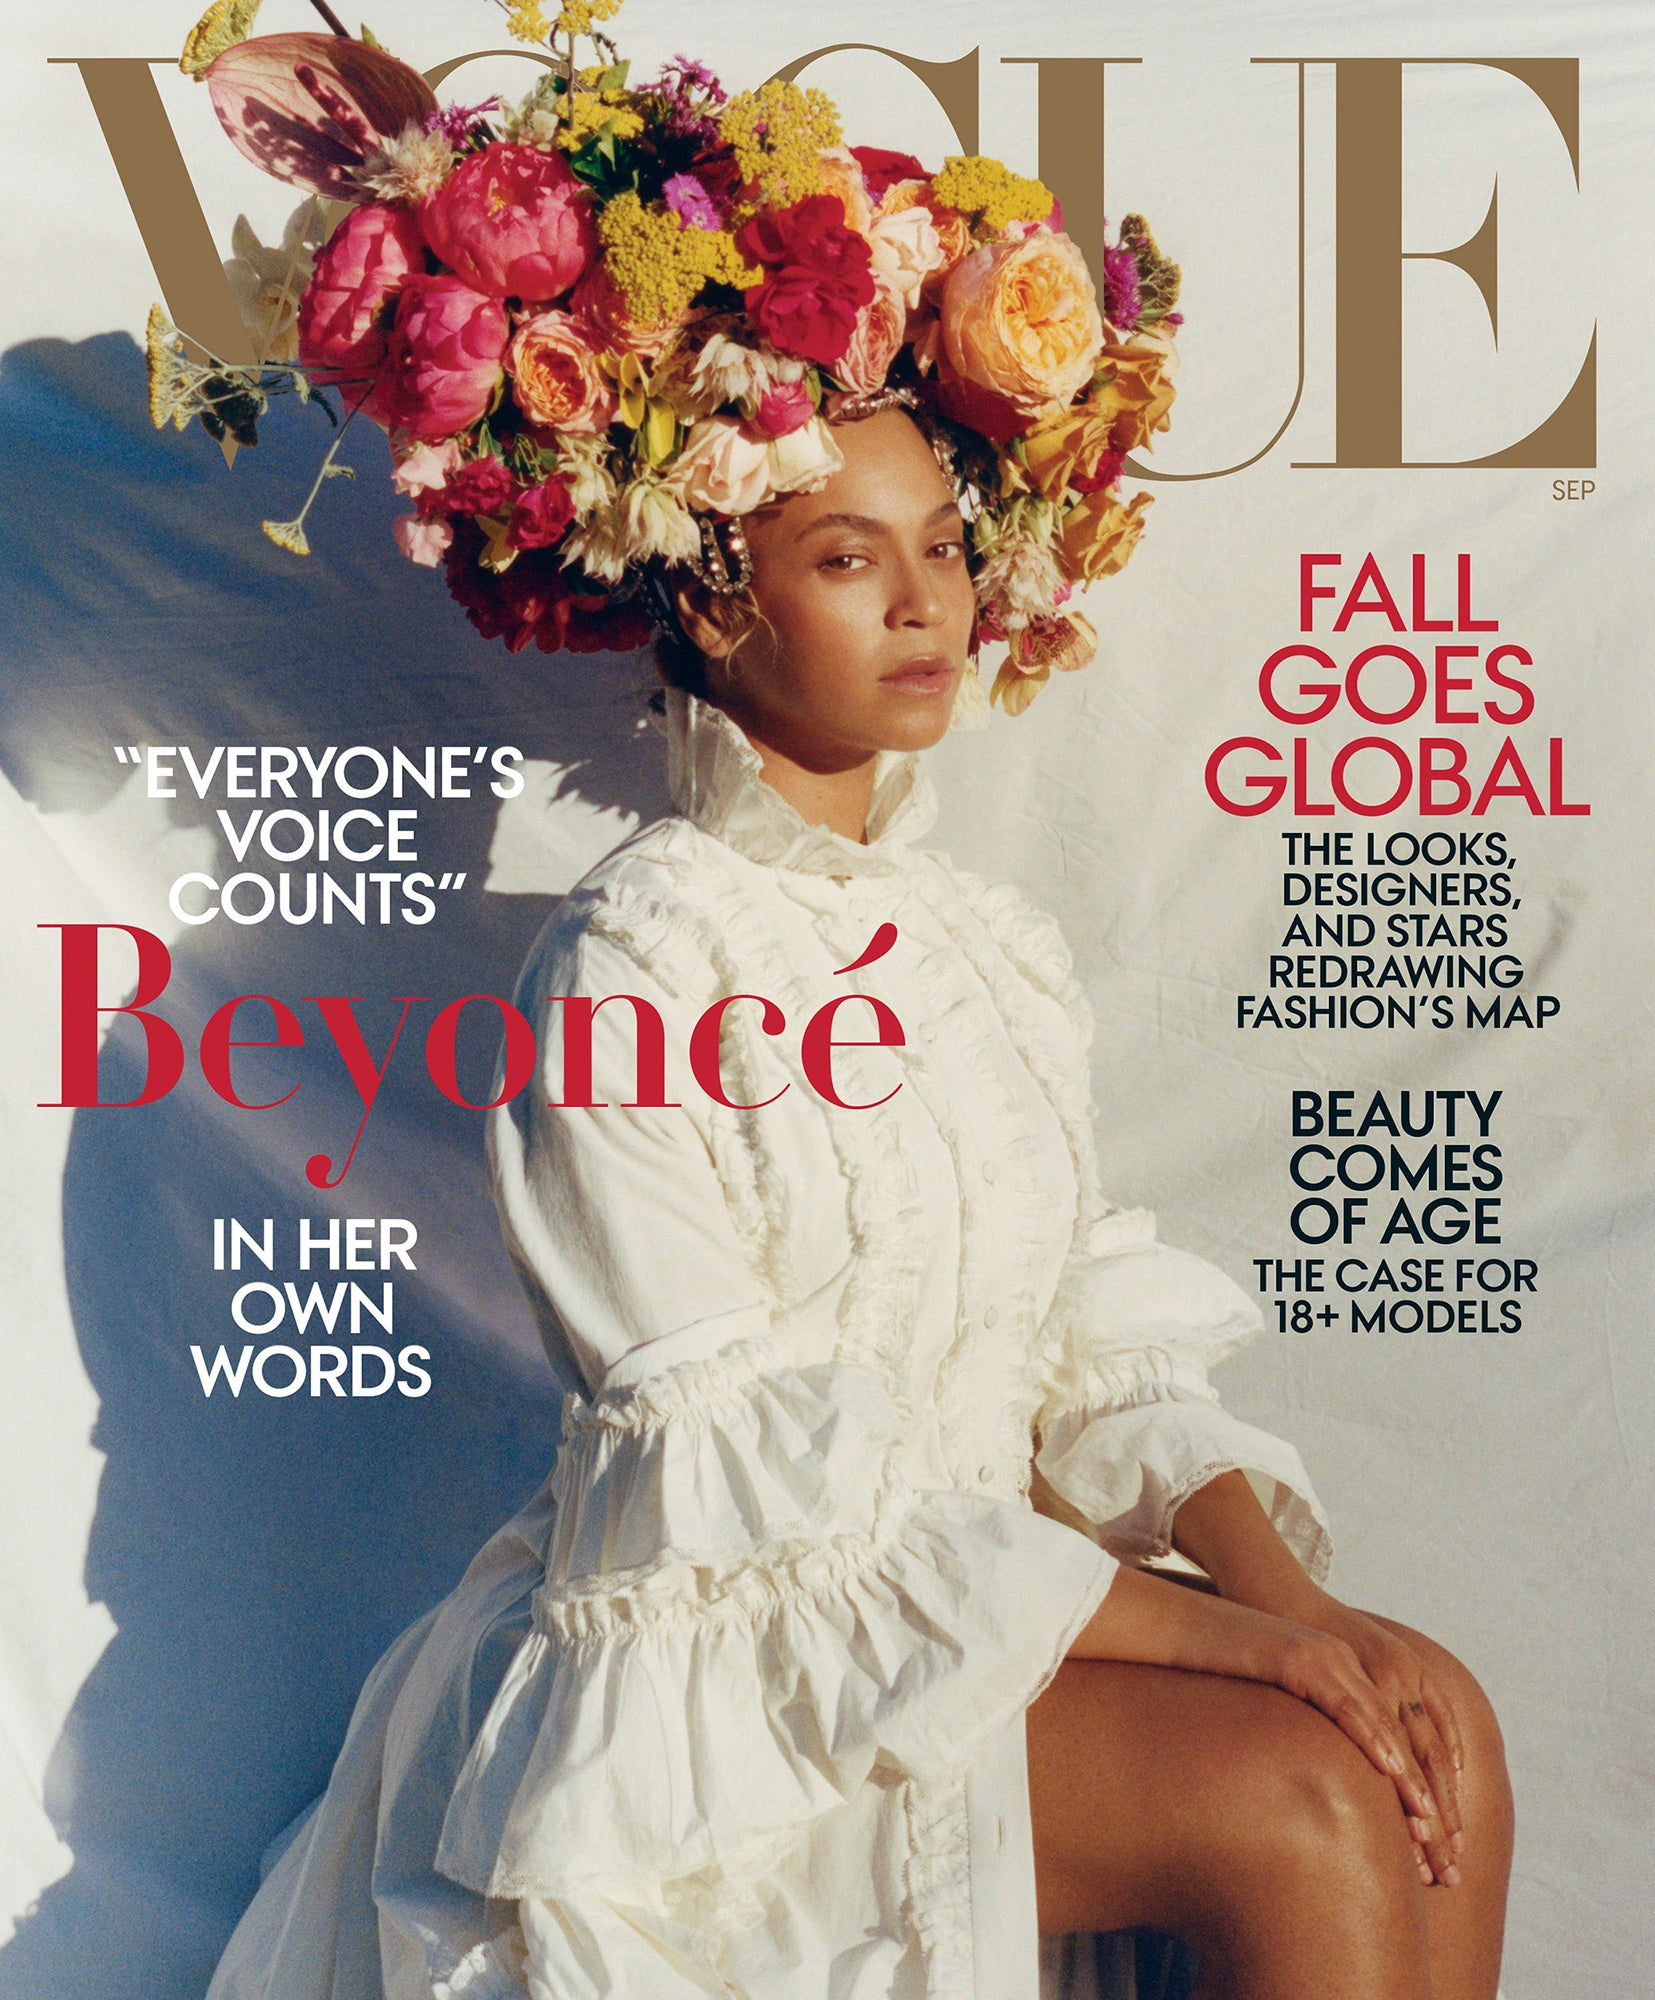 vogue_Beyonce_cover_image_courtesy_of_VogueMagazine